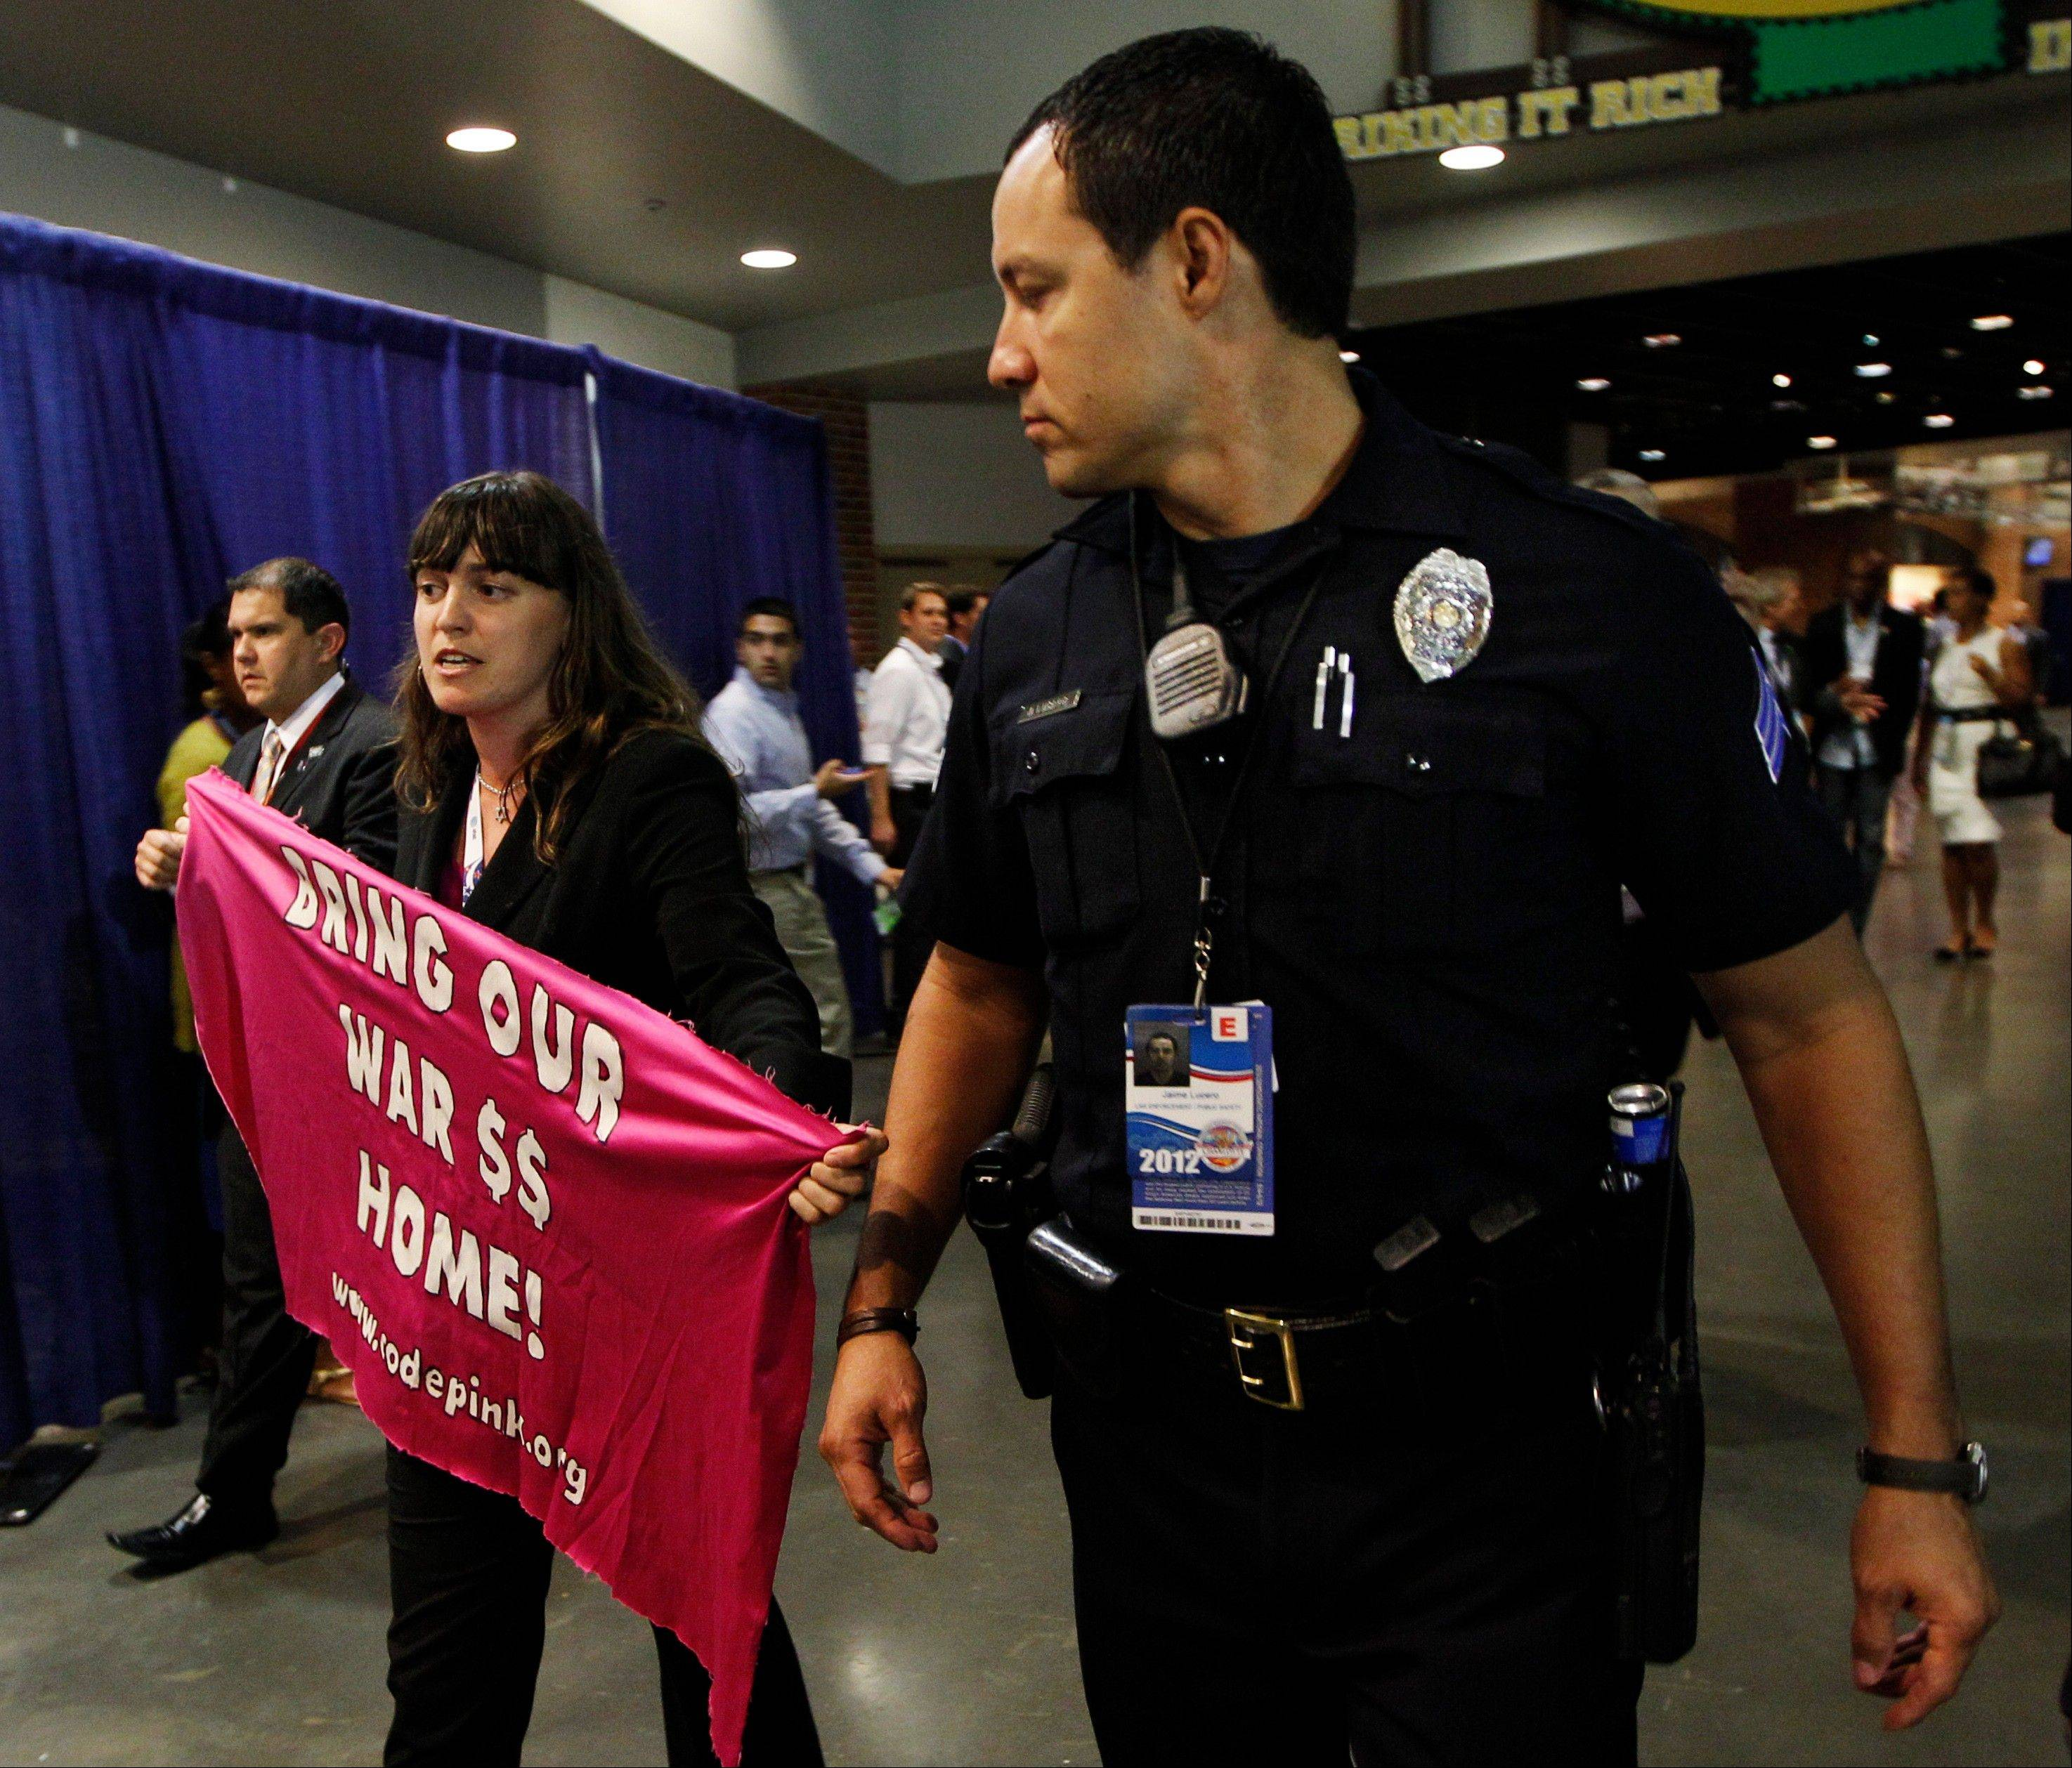 A protester is escorted out of the Timer Warner Arena by a police officer during the Democratic National Convention in Charlotte, N.C., on Wednesday, Sept. 5, 2012.